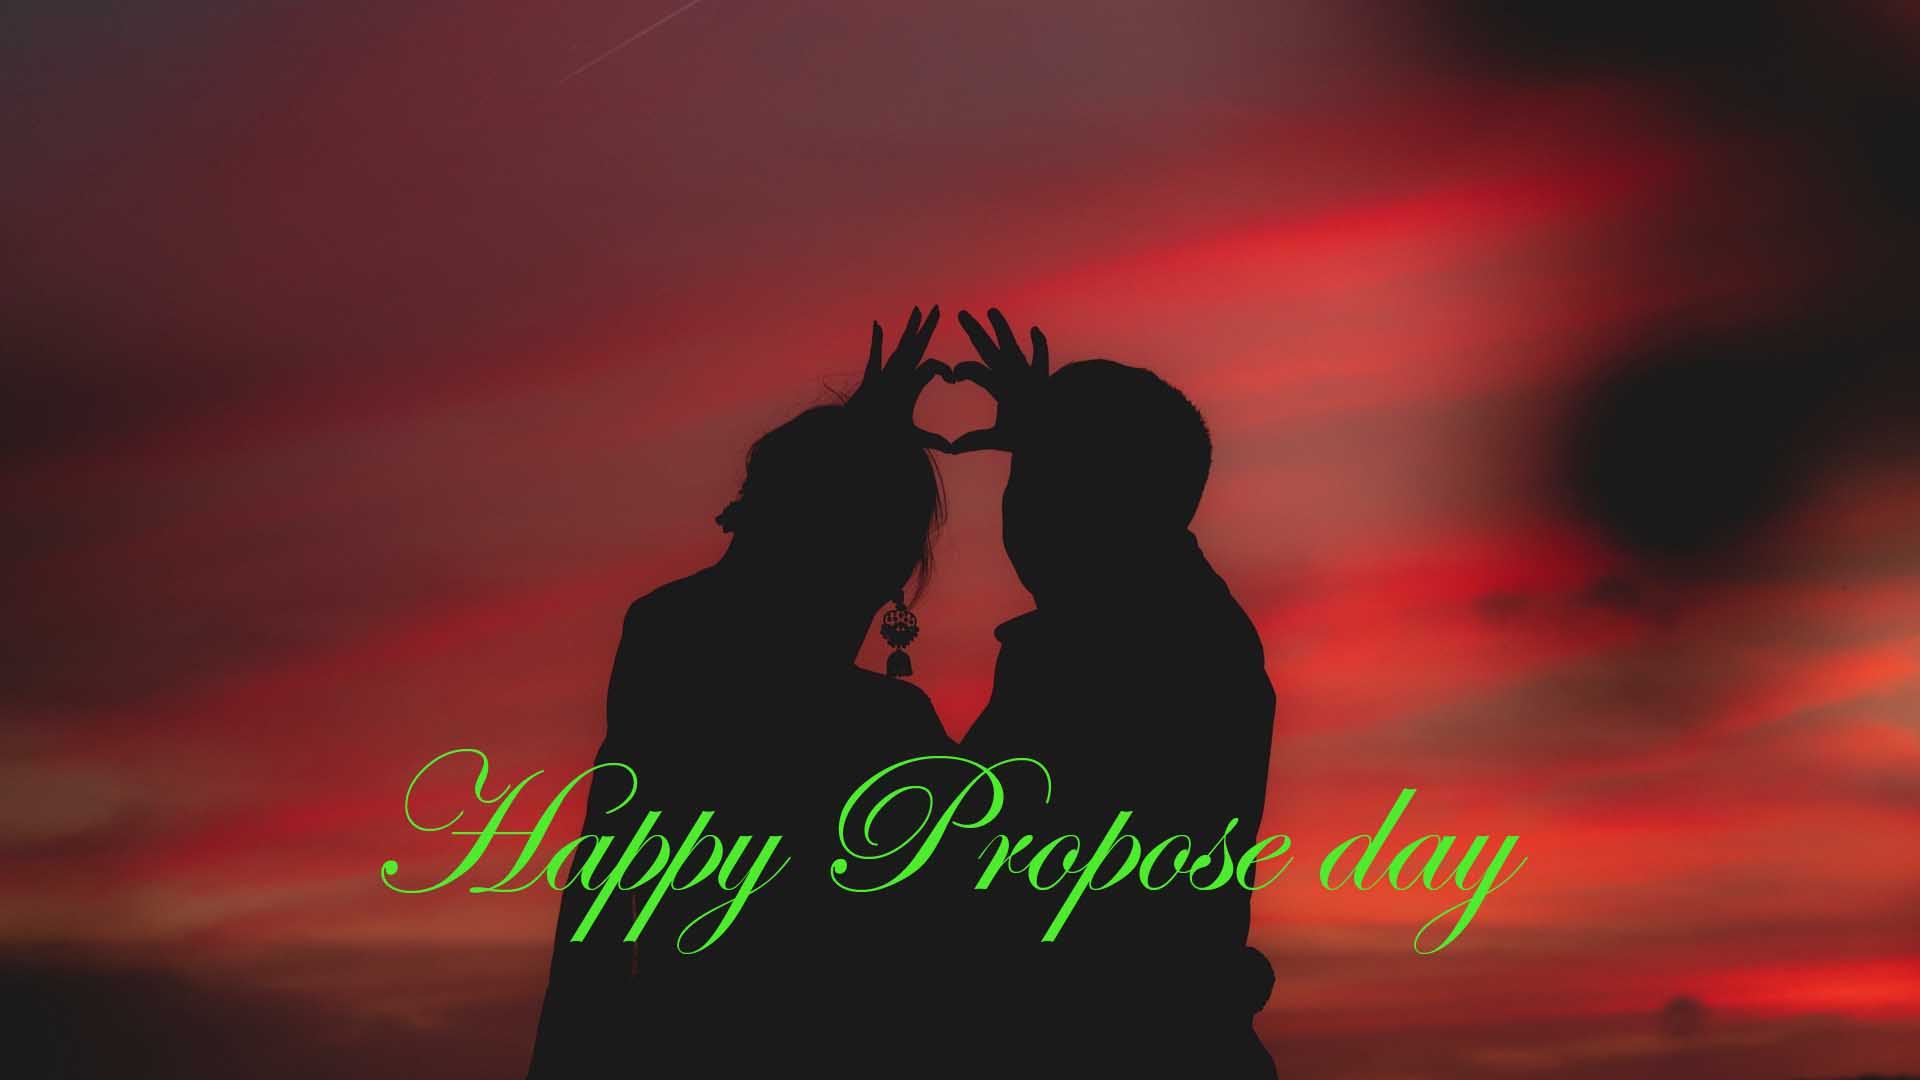 Pictures of Propose Day